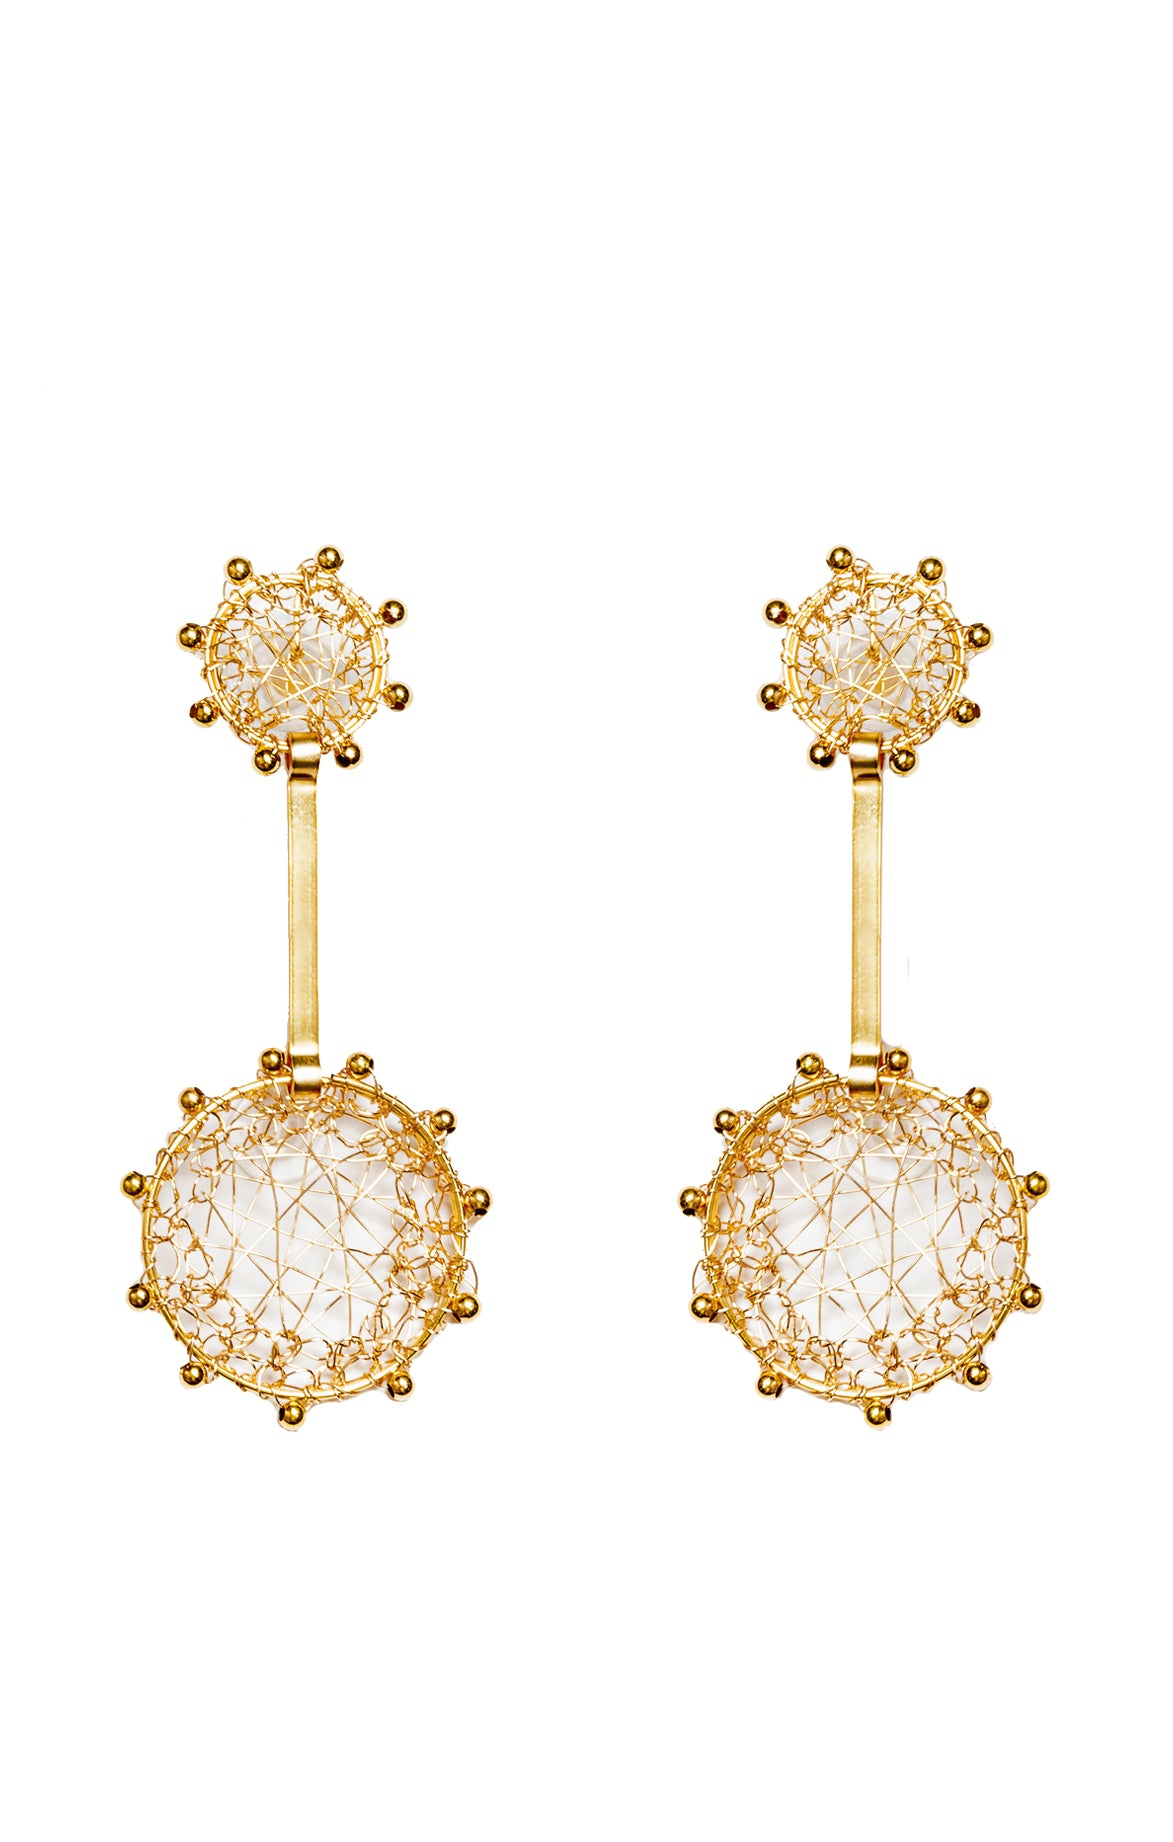 Zhue Earrings